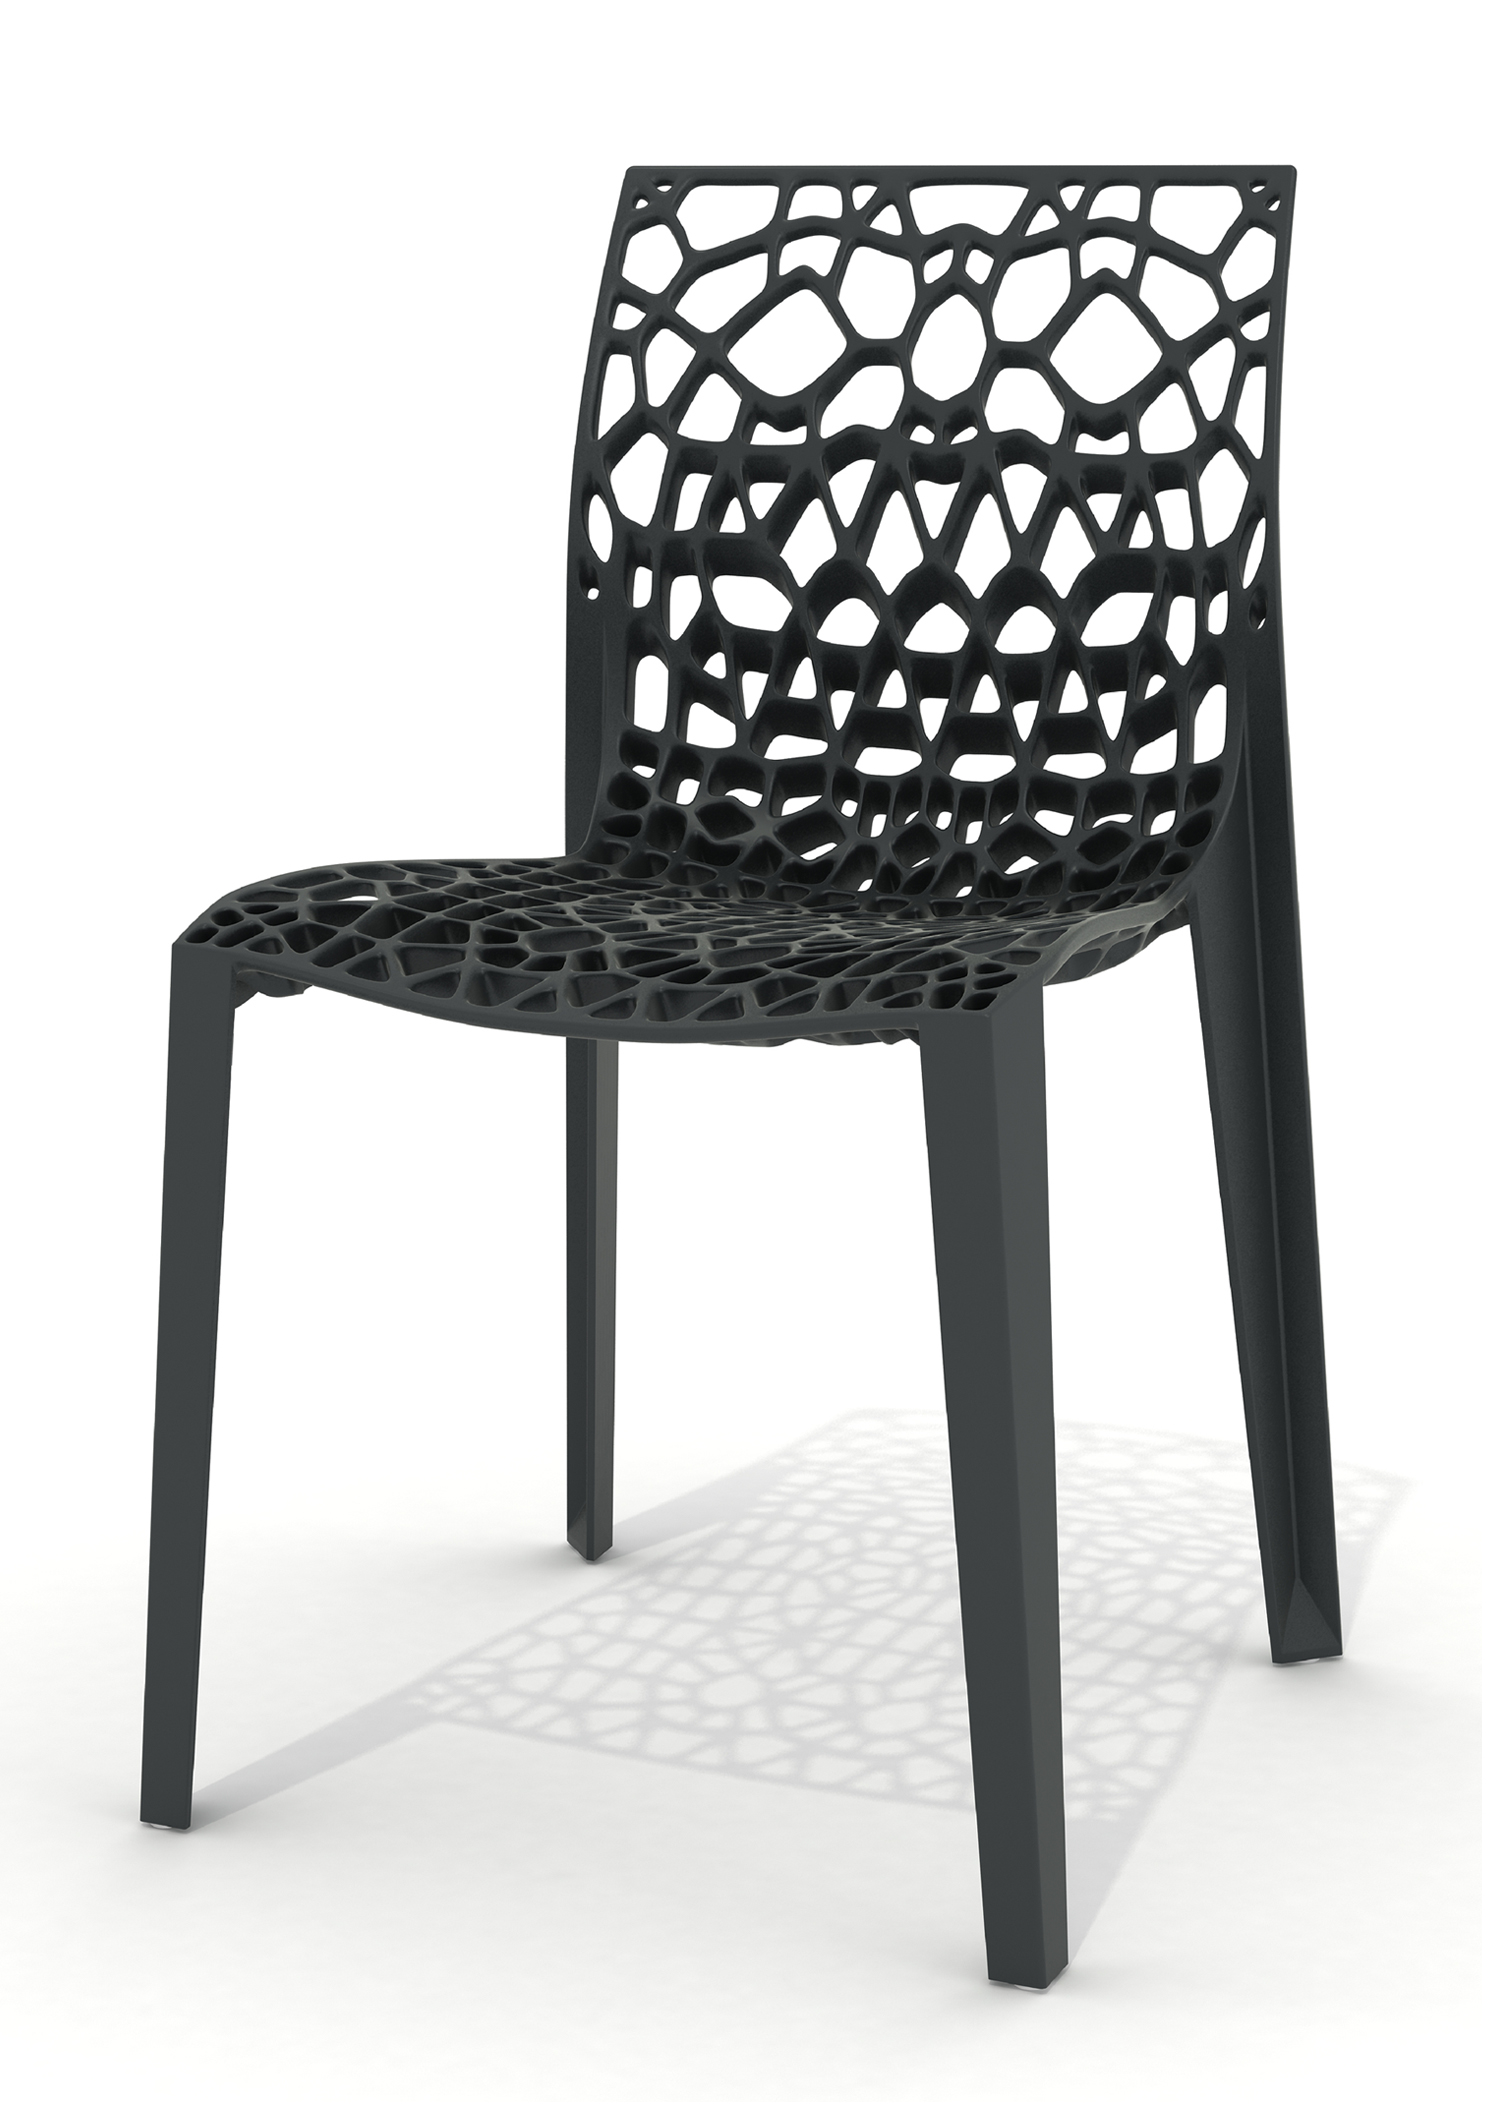 Coral Chair Coral Is A One Piece Injection Moulded Chair